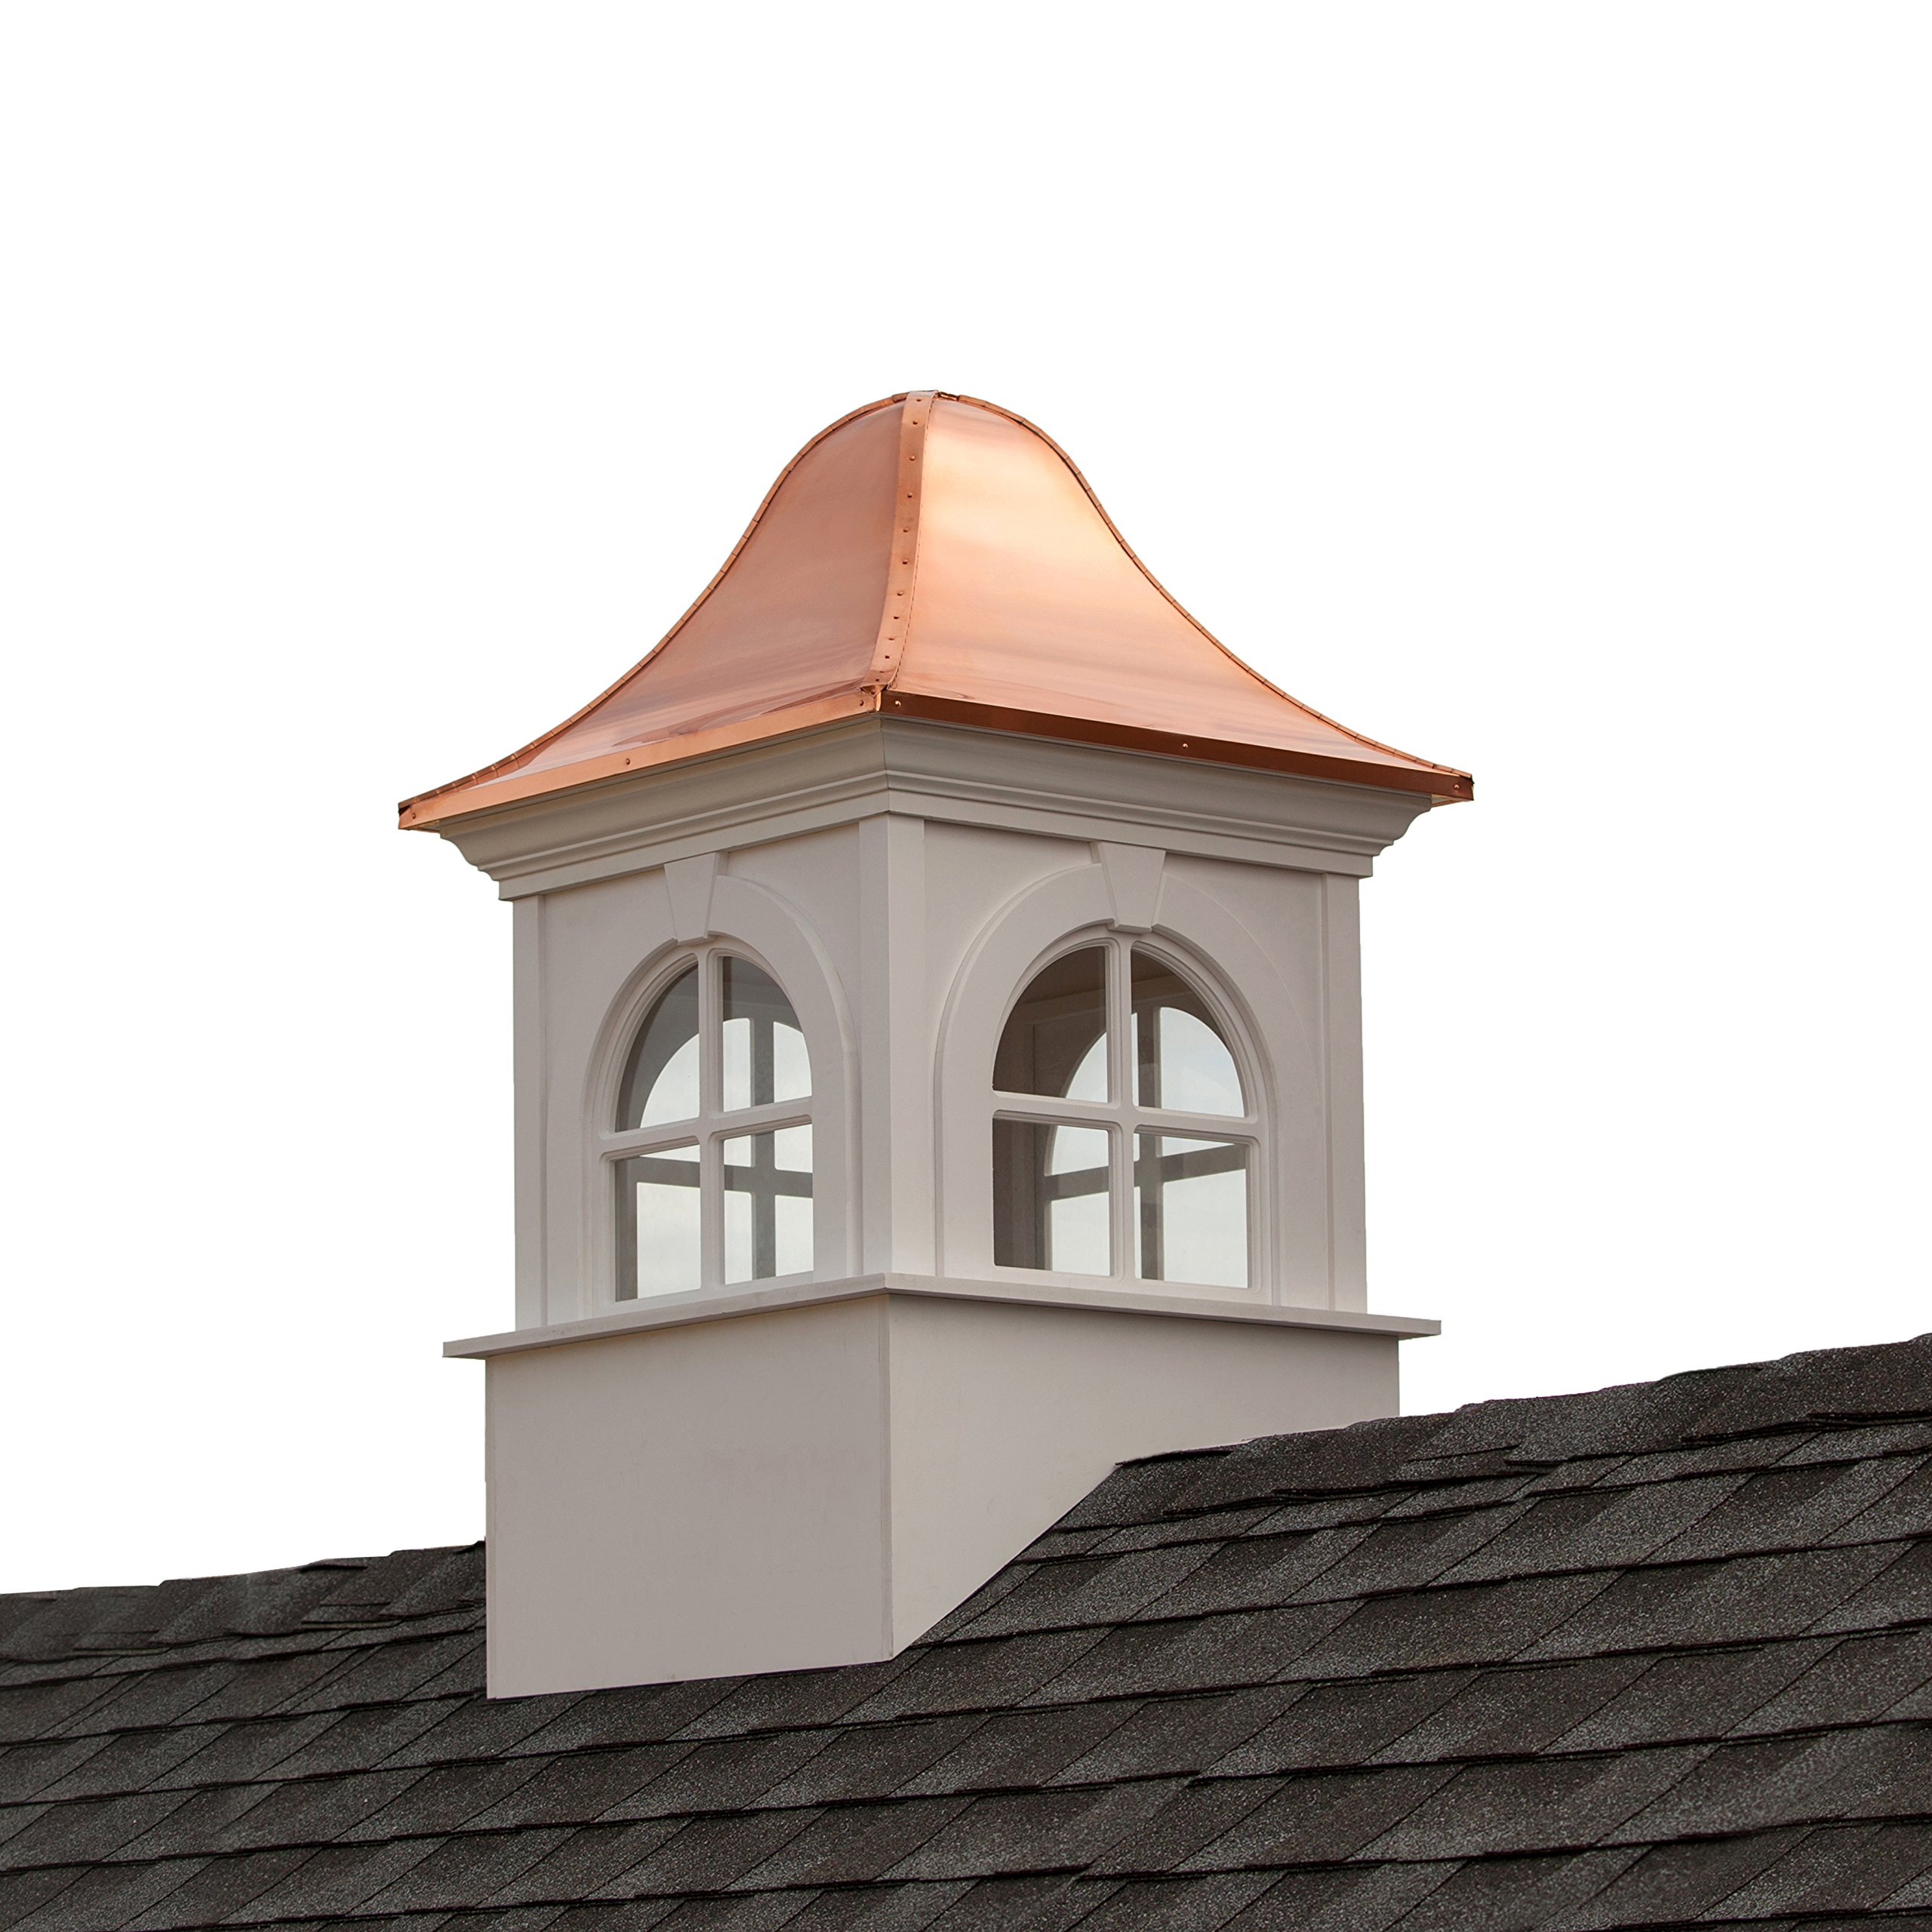 Smithsonian Washington Vinyl Cupola with Copper Roof 26'' x 42'' by Good Directions